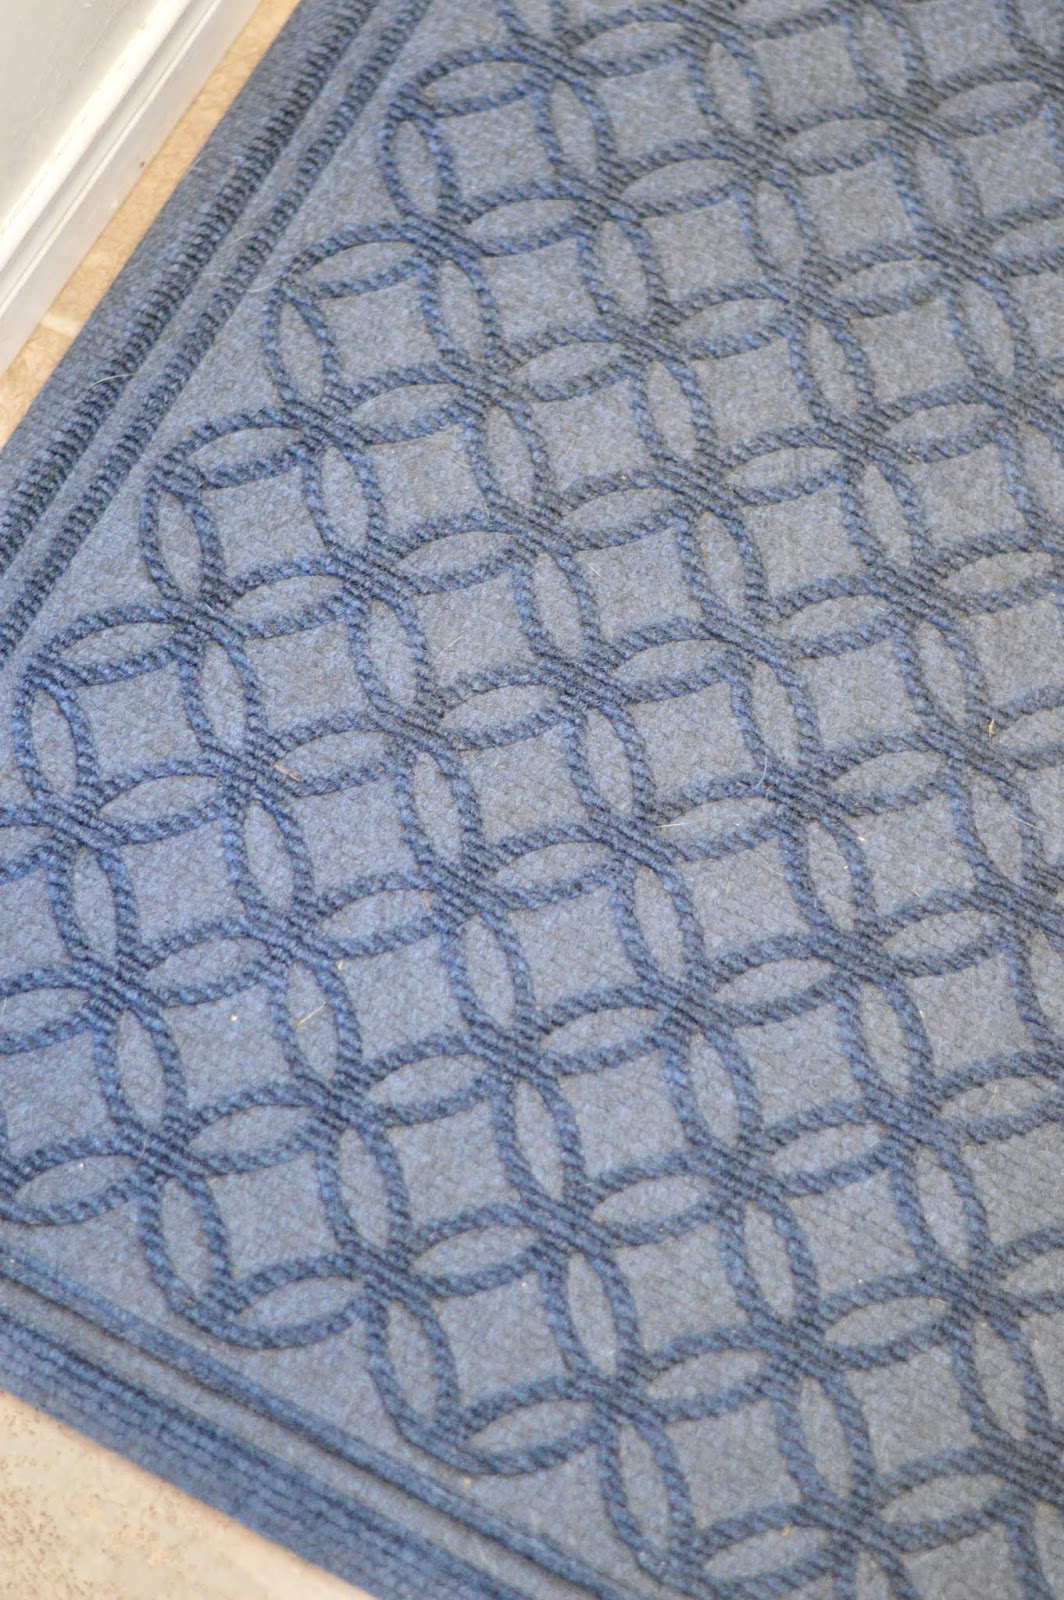 L.L.Bean's Waterhog Rug - One Year Later Review